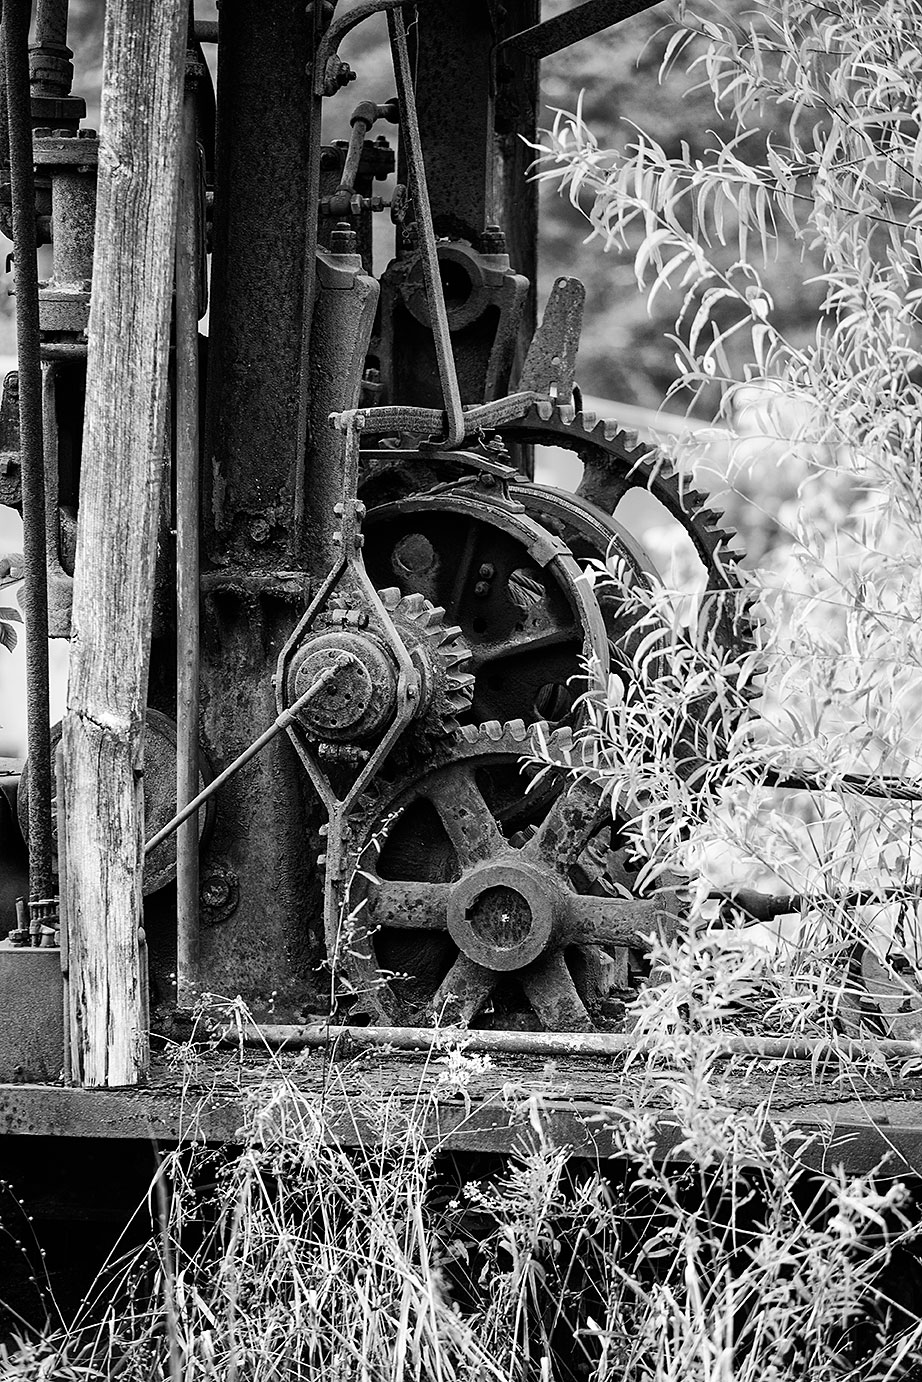 A detail photograph of a set of rusty gears and weathered wood among the tall weeds.